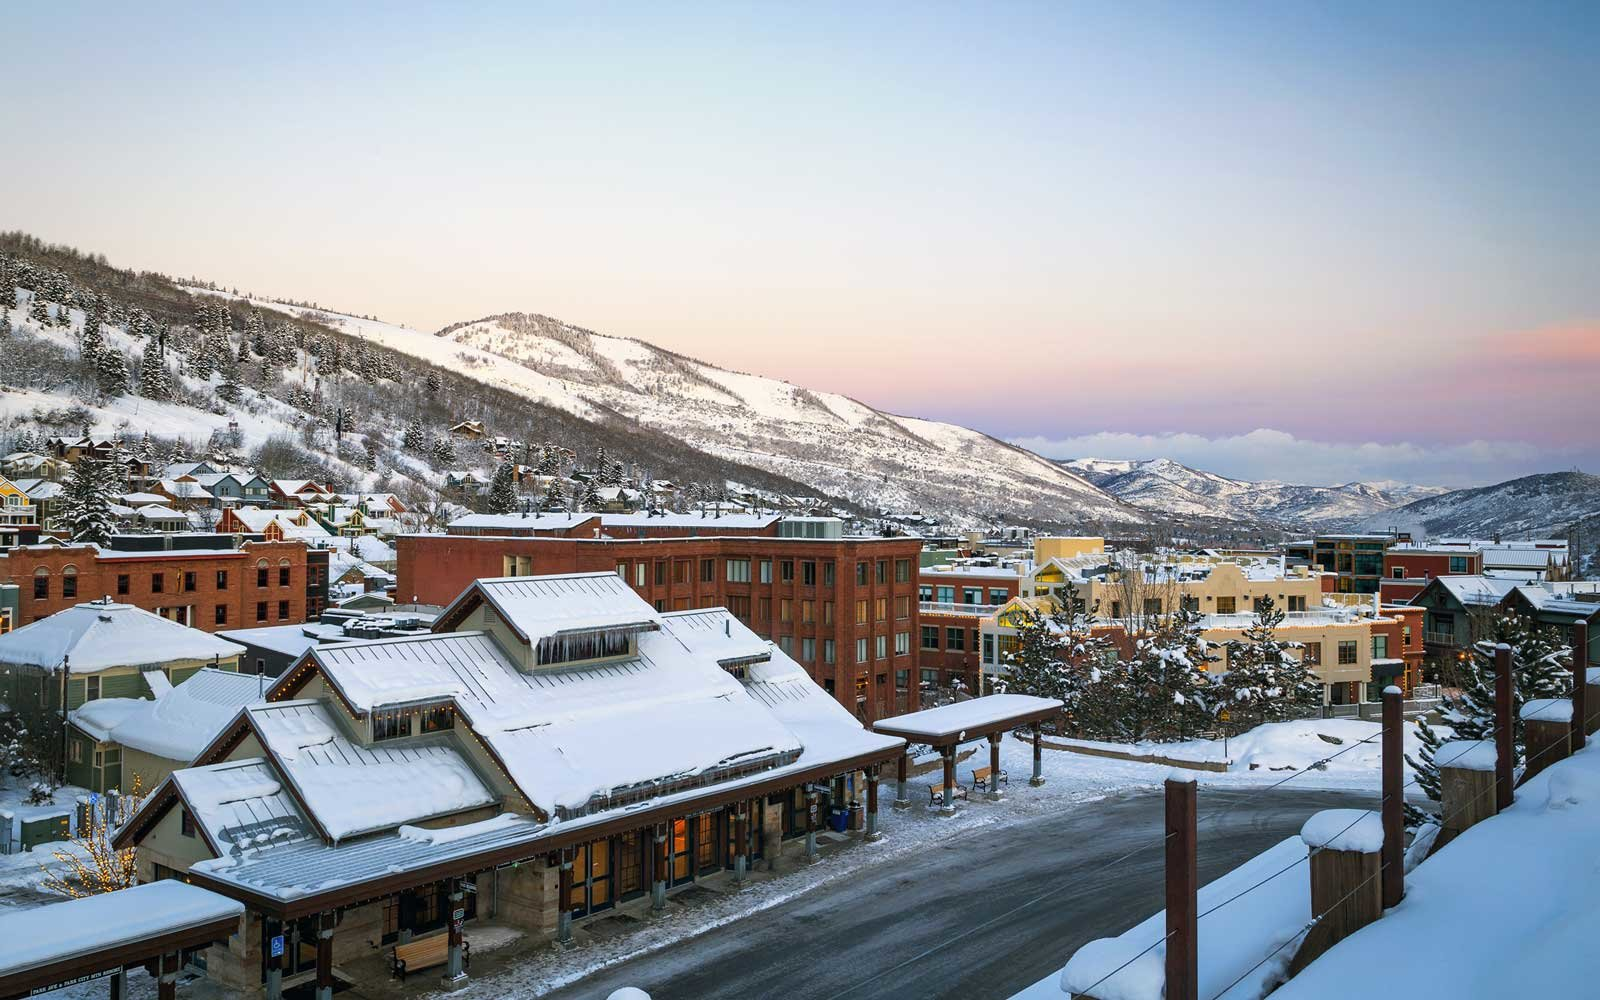 Winter sunset in Park City, Utah, USA